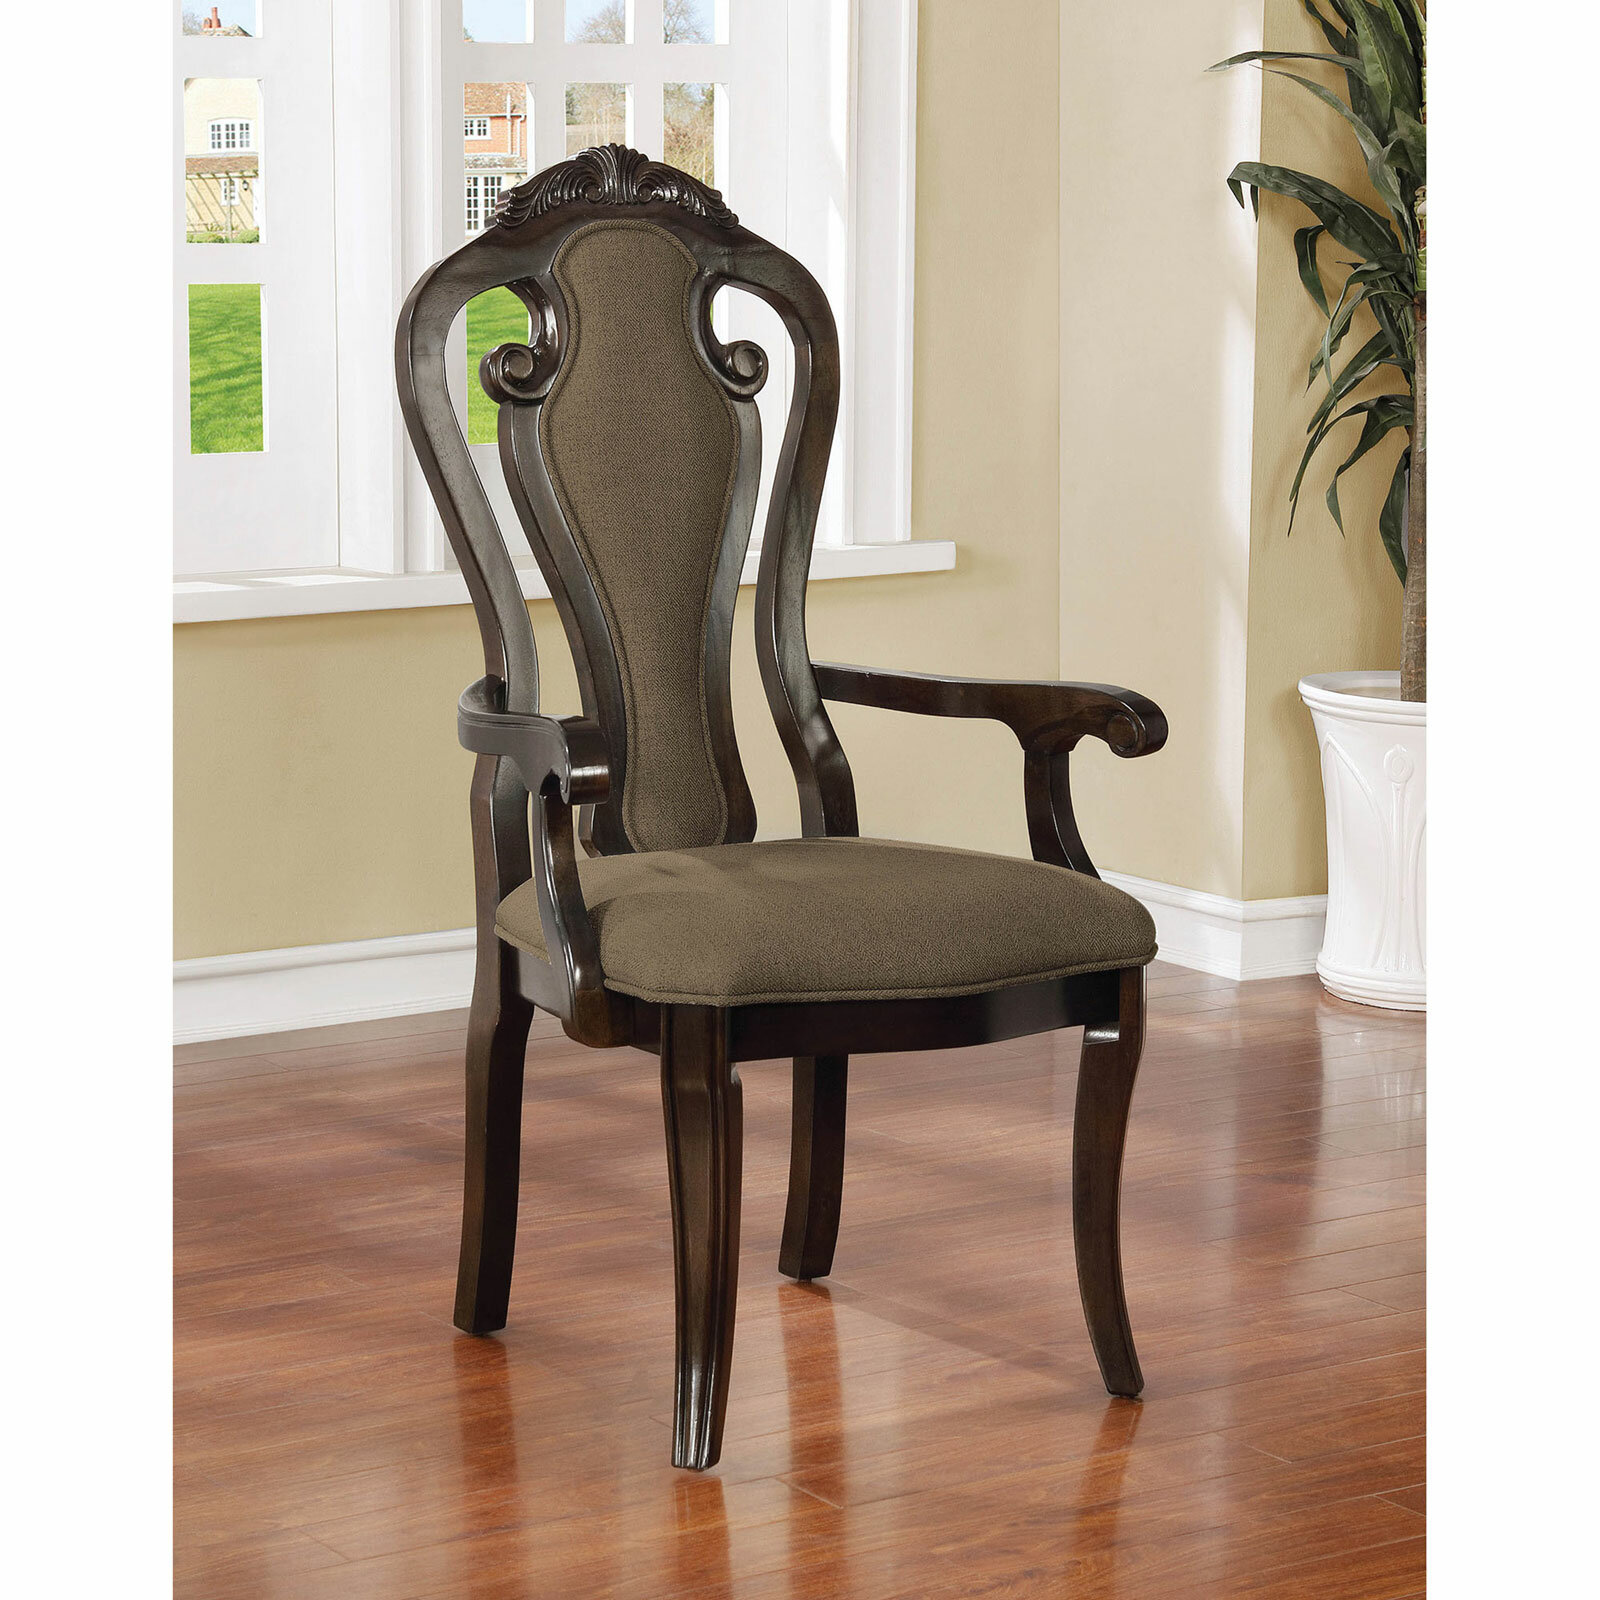 Astoria Grand Colby Upholstered Dining Chair Wayfair